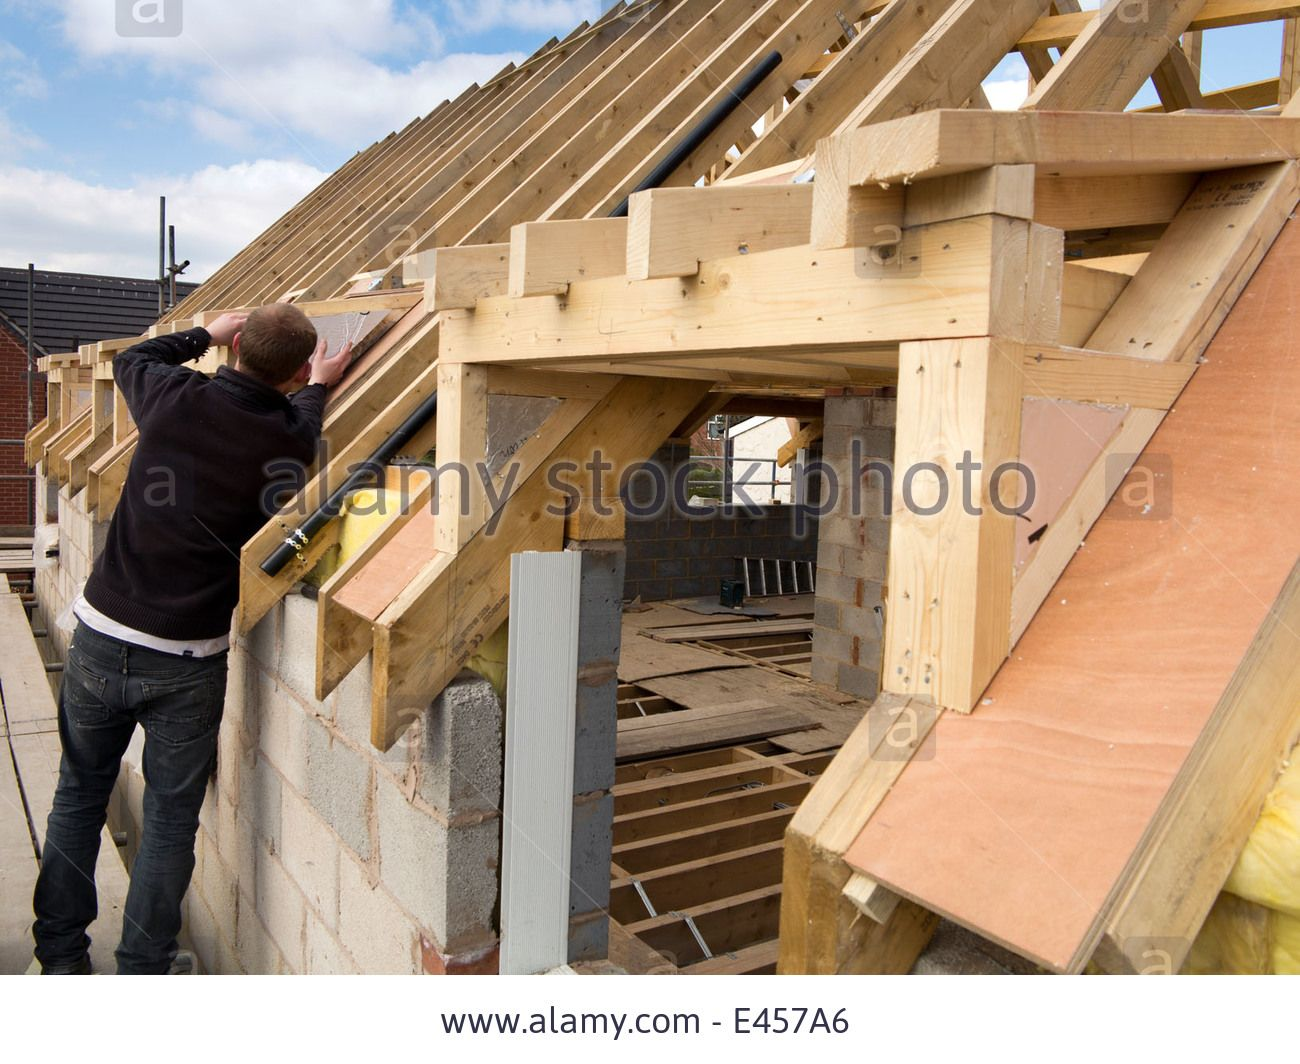 Building a dormer on a house - Self Building House Constructing Roof Insulating Dormer Cheeks With Sheet Insulation Stock Photo